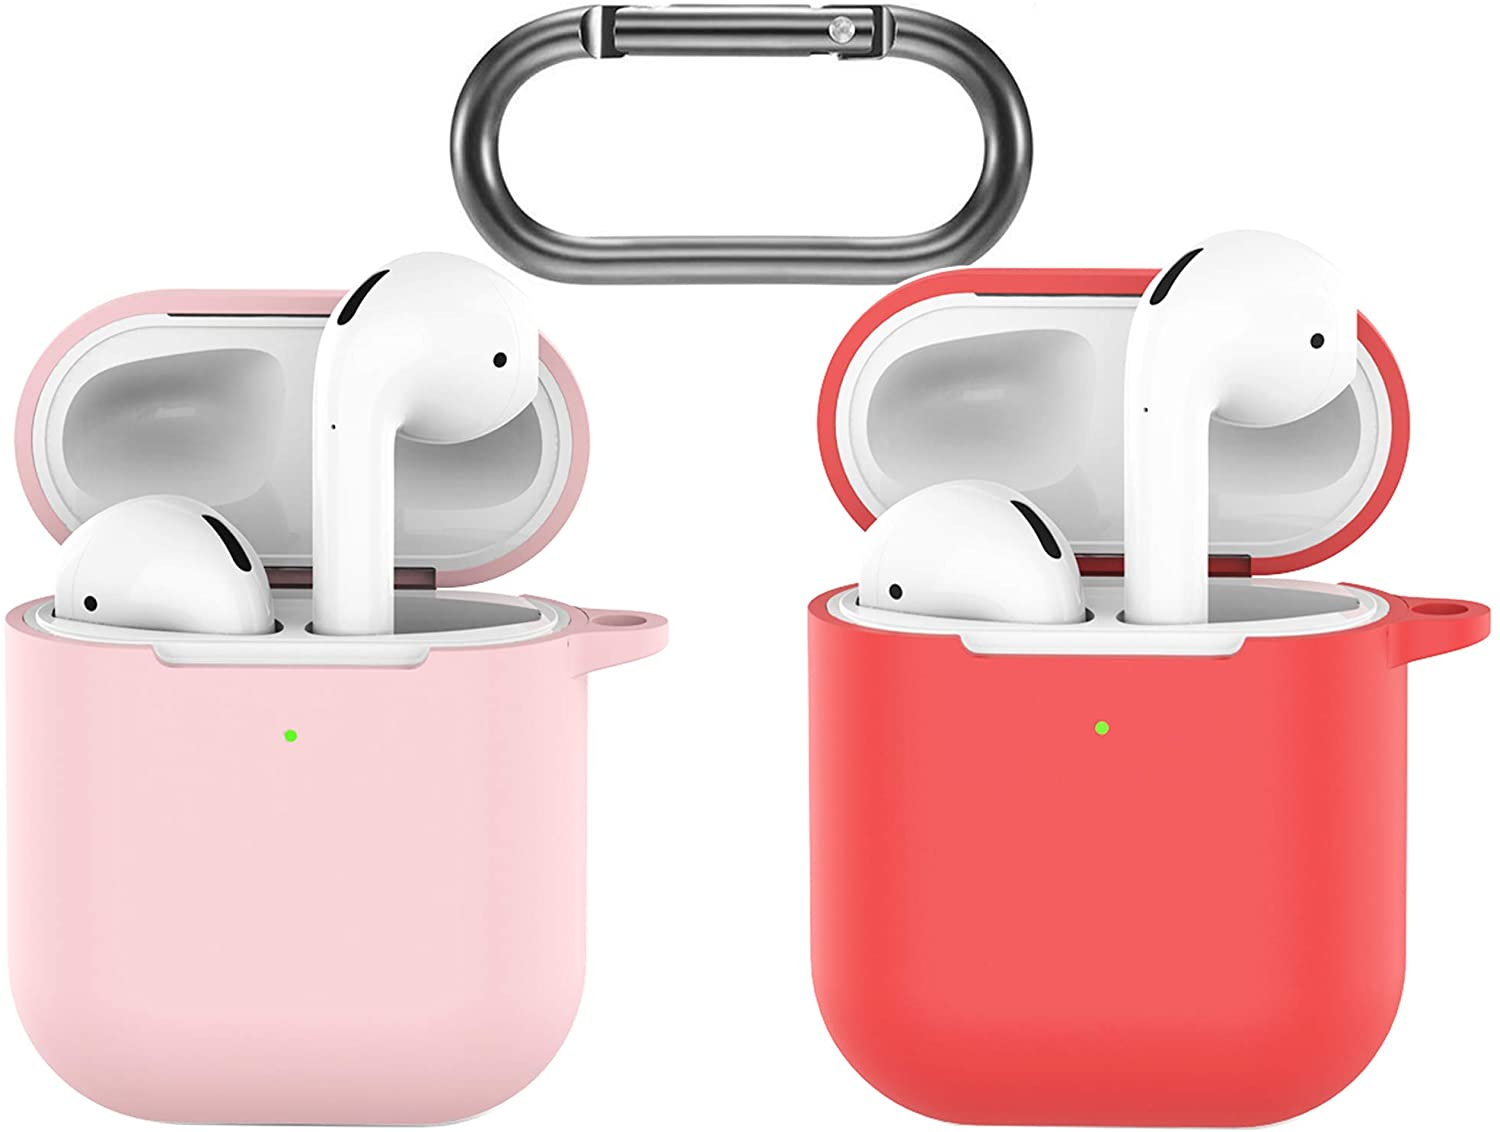 amasing Airpods Case,Competible with Airpods 1 2 Holder Protective,Led visble for Airpods Gen2 + Keychain,with Clip Fundas Airpod Apple Earbuds Silicon Rubber Cover Hook Red+Pink B